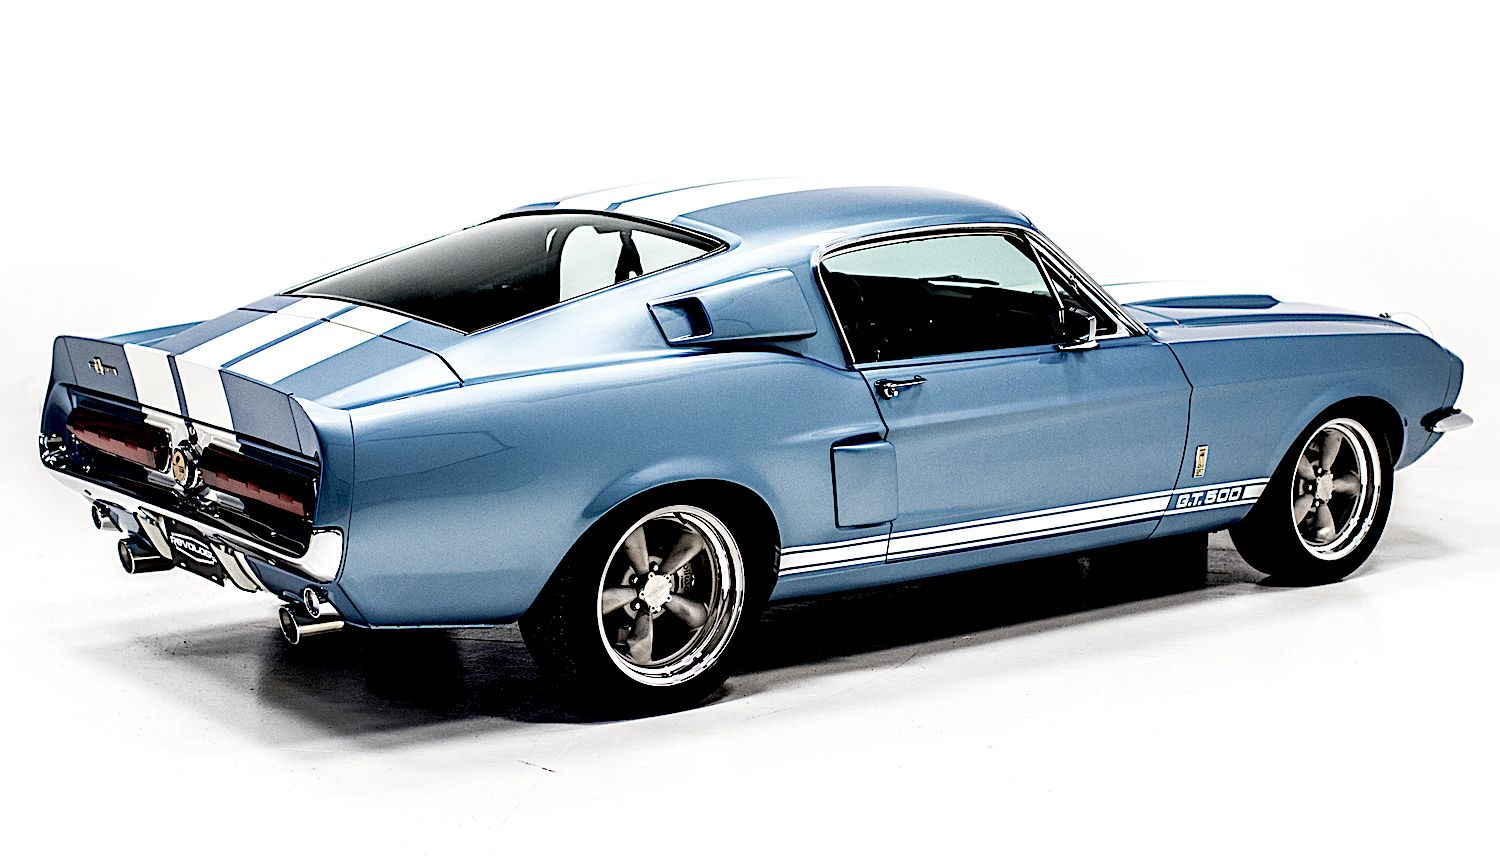 1967 Shelby Gt500 Shelby Gt500 Ford Classic Cars Ford Mustang